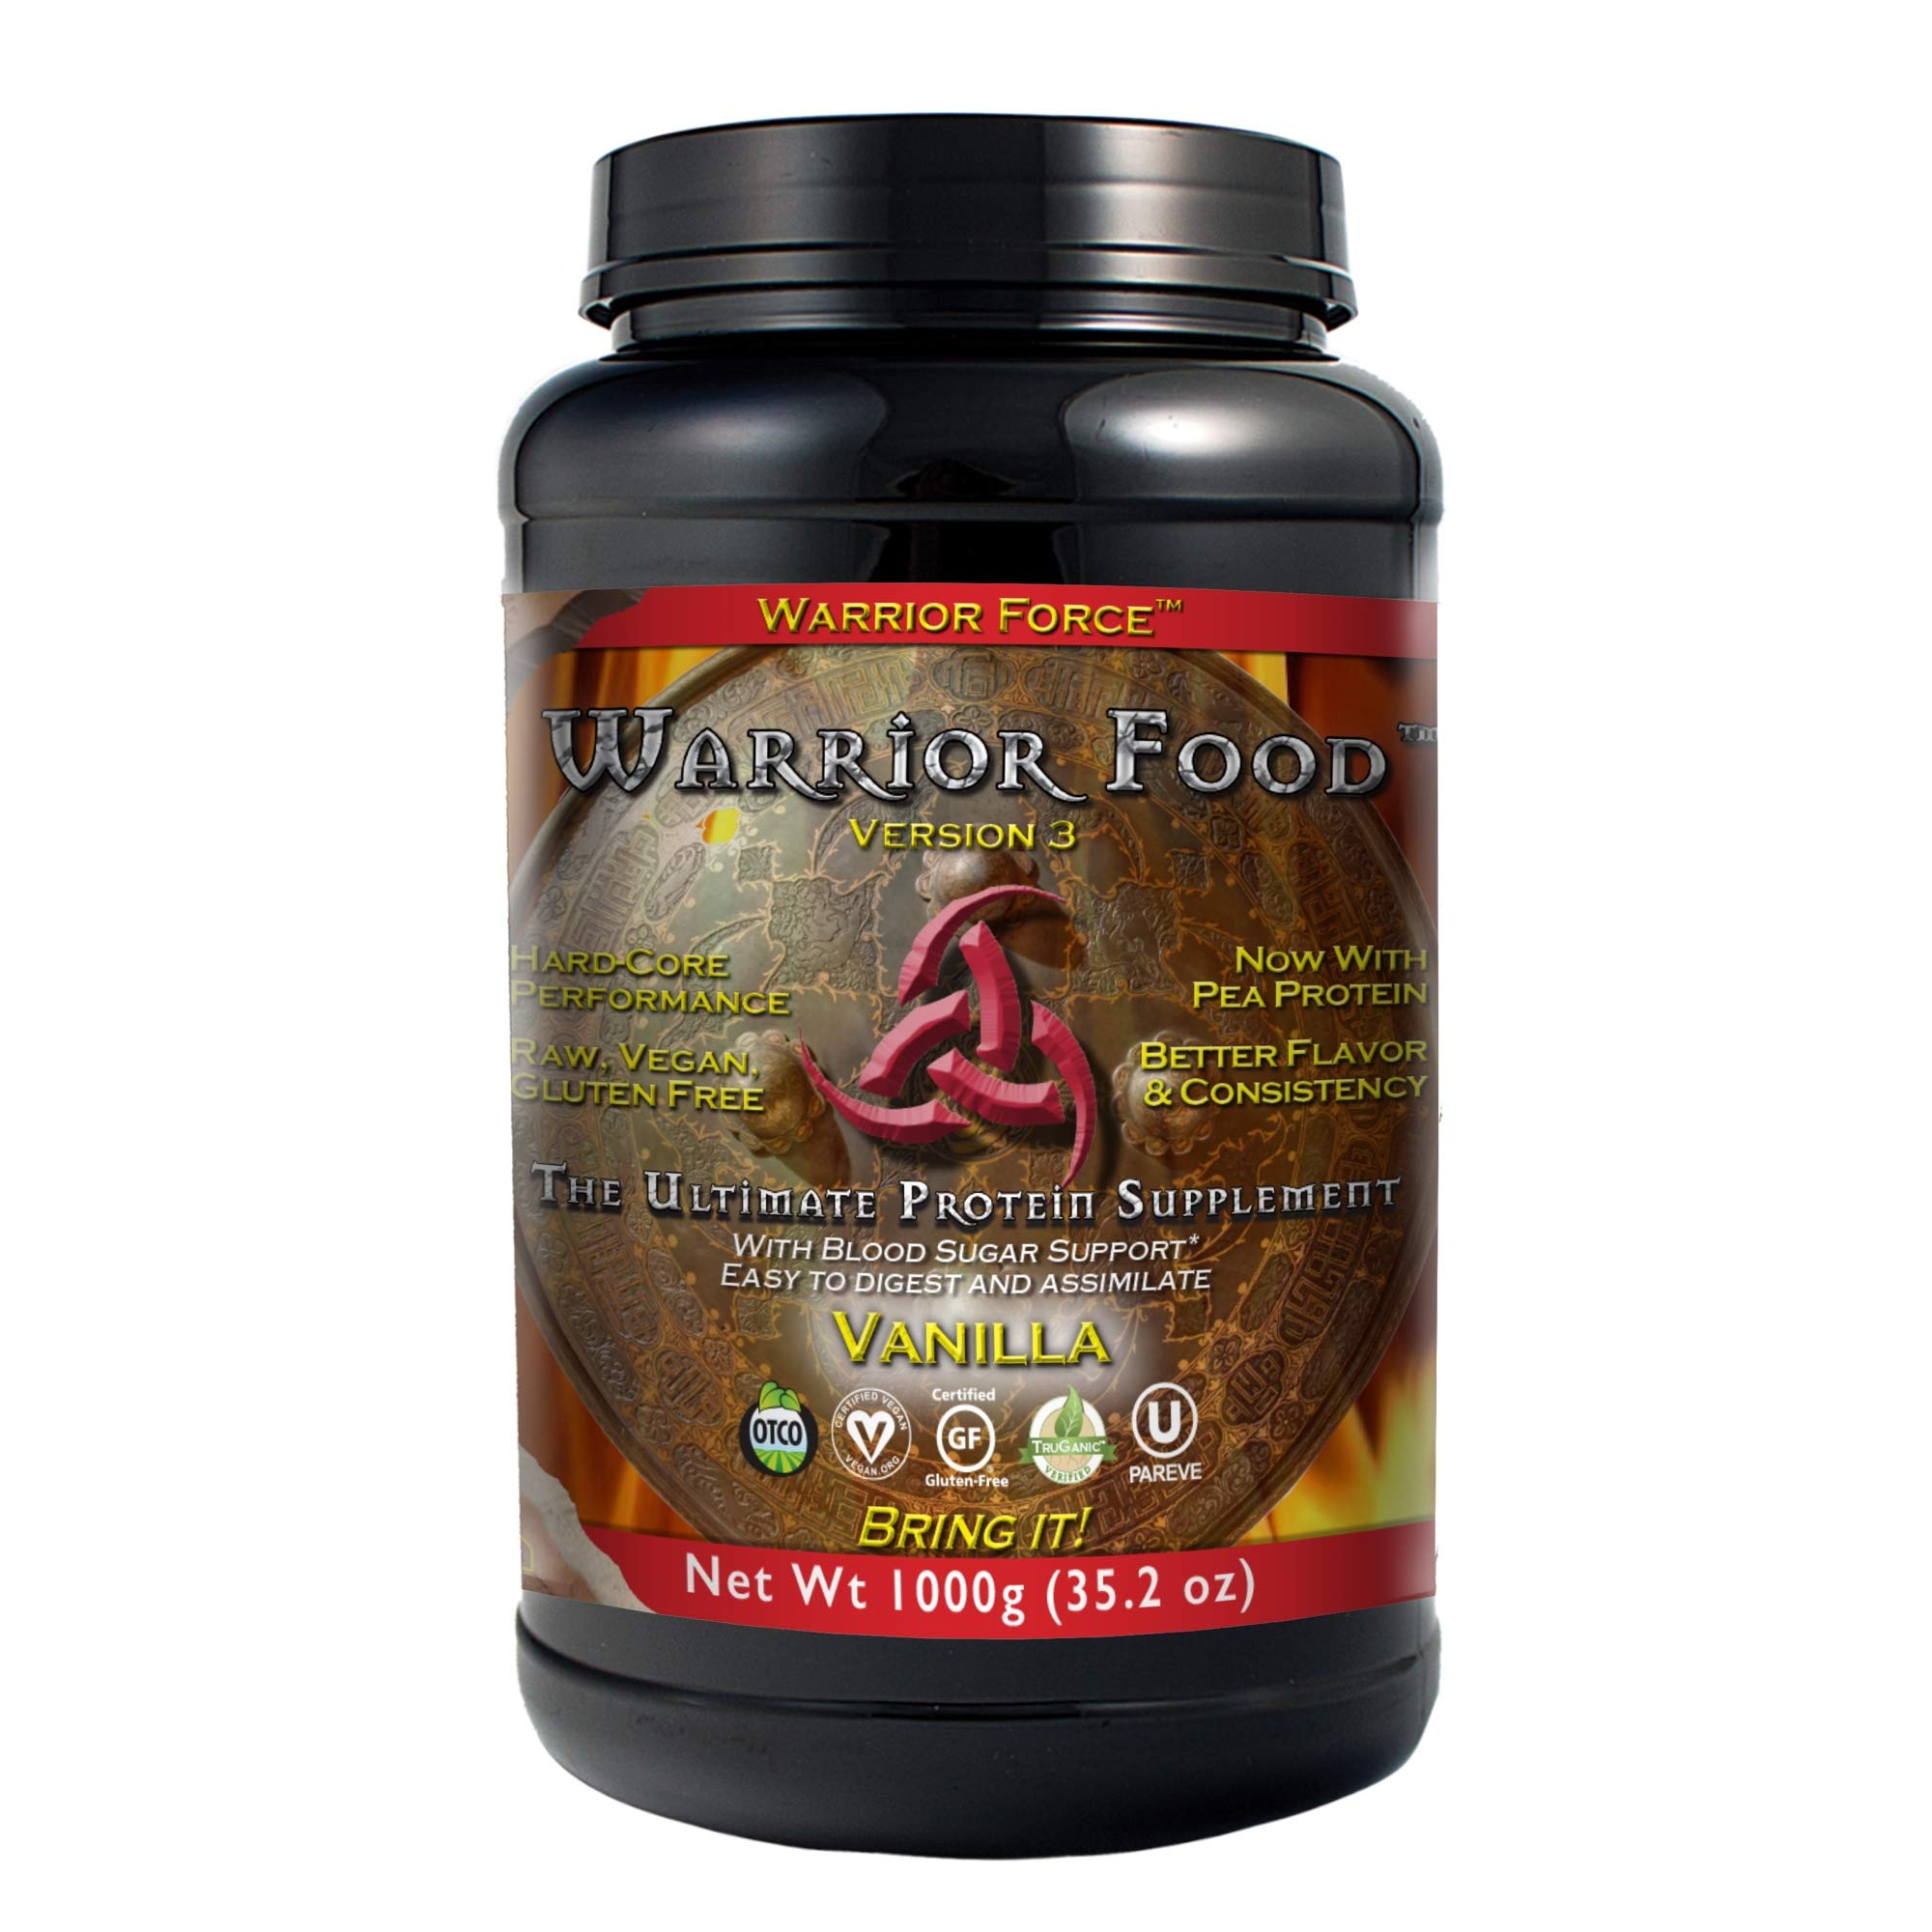 HealthForce SuperFoods Warrior Food, Vegan Protein Powder, Sports Nutrition Alternative, Plant-Based, All Natural, Organic, Gluten-Free, Vanilla, 1000 Grams by HEALTHFORCE SUPERFOODS